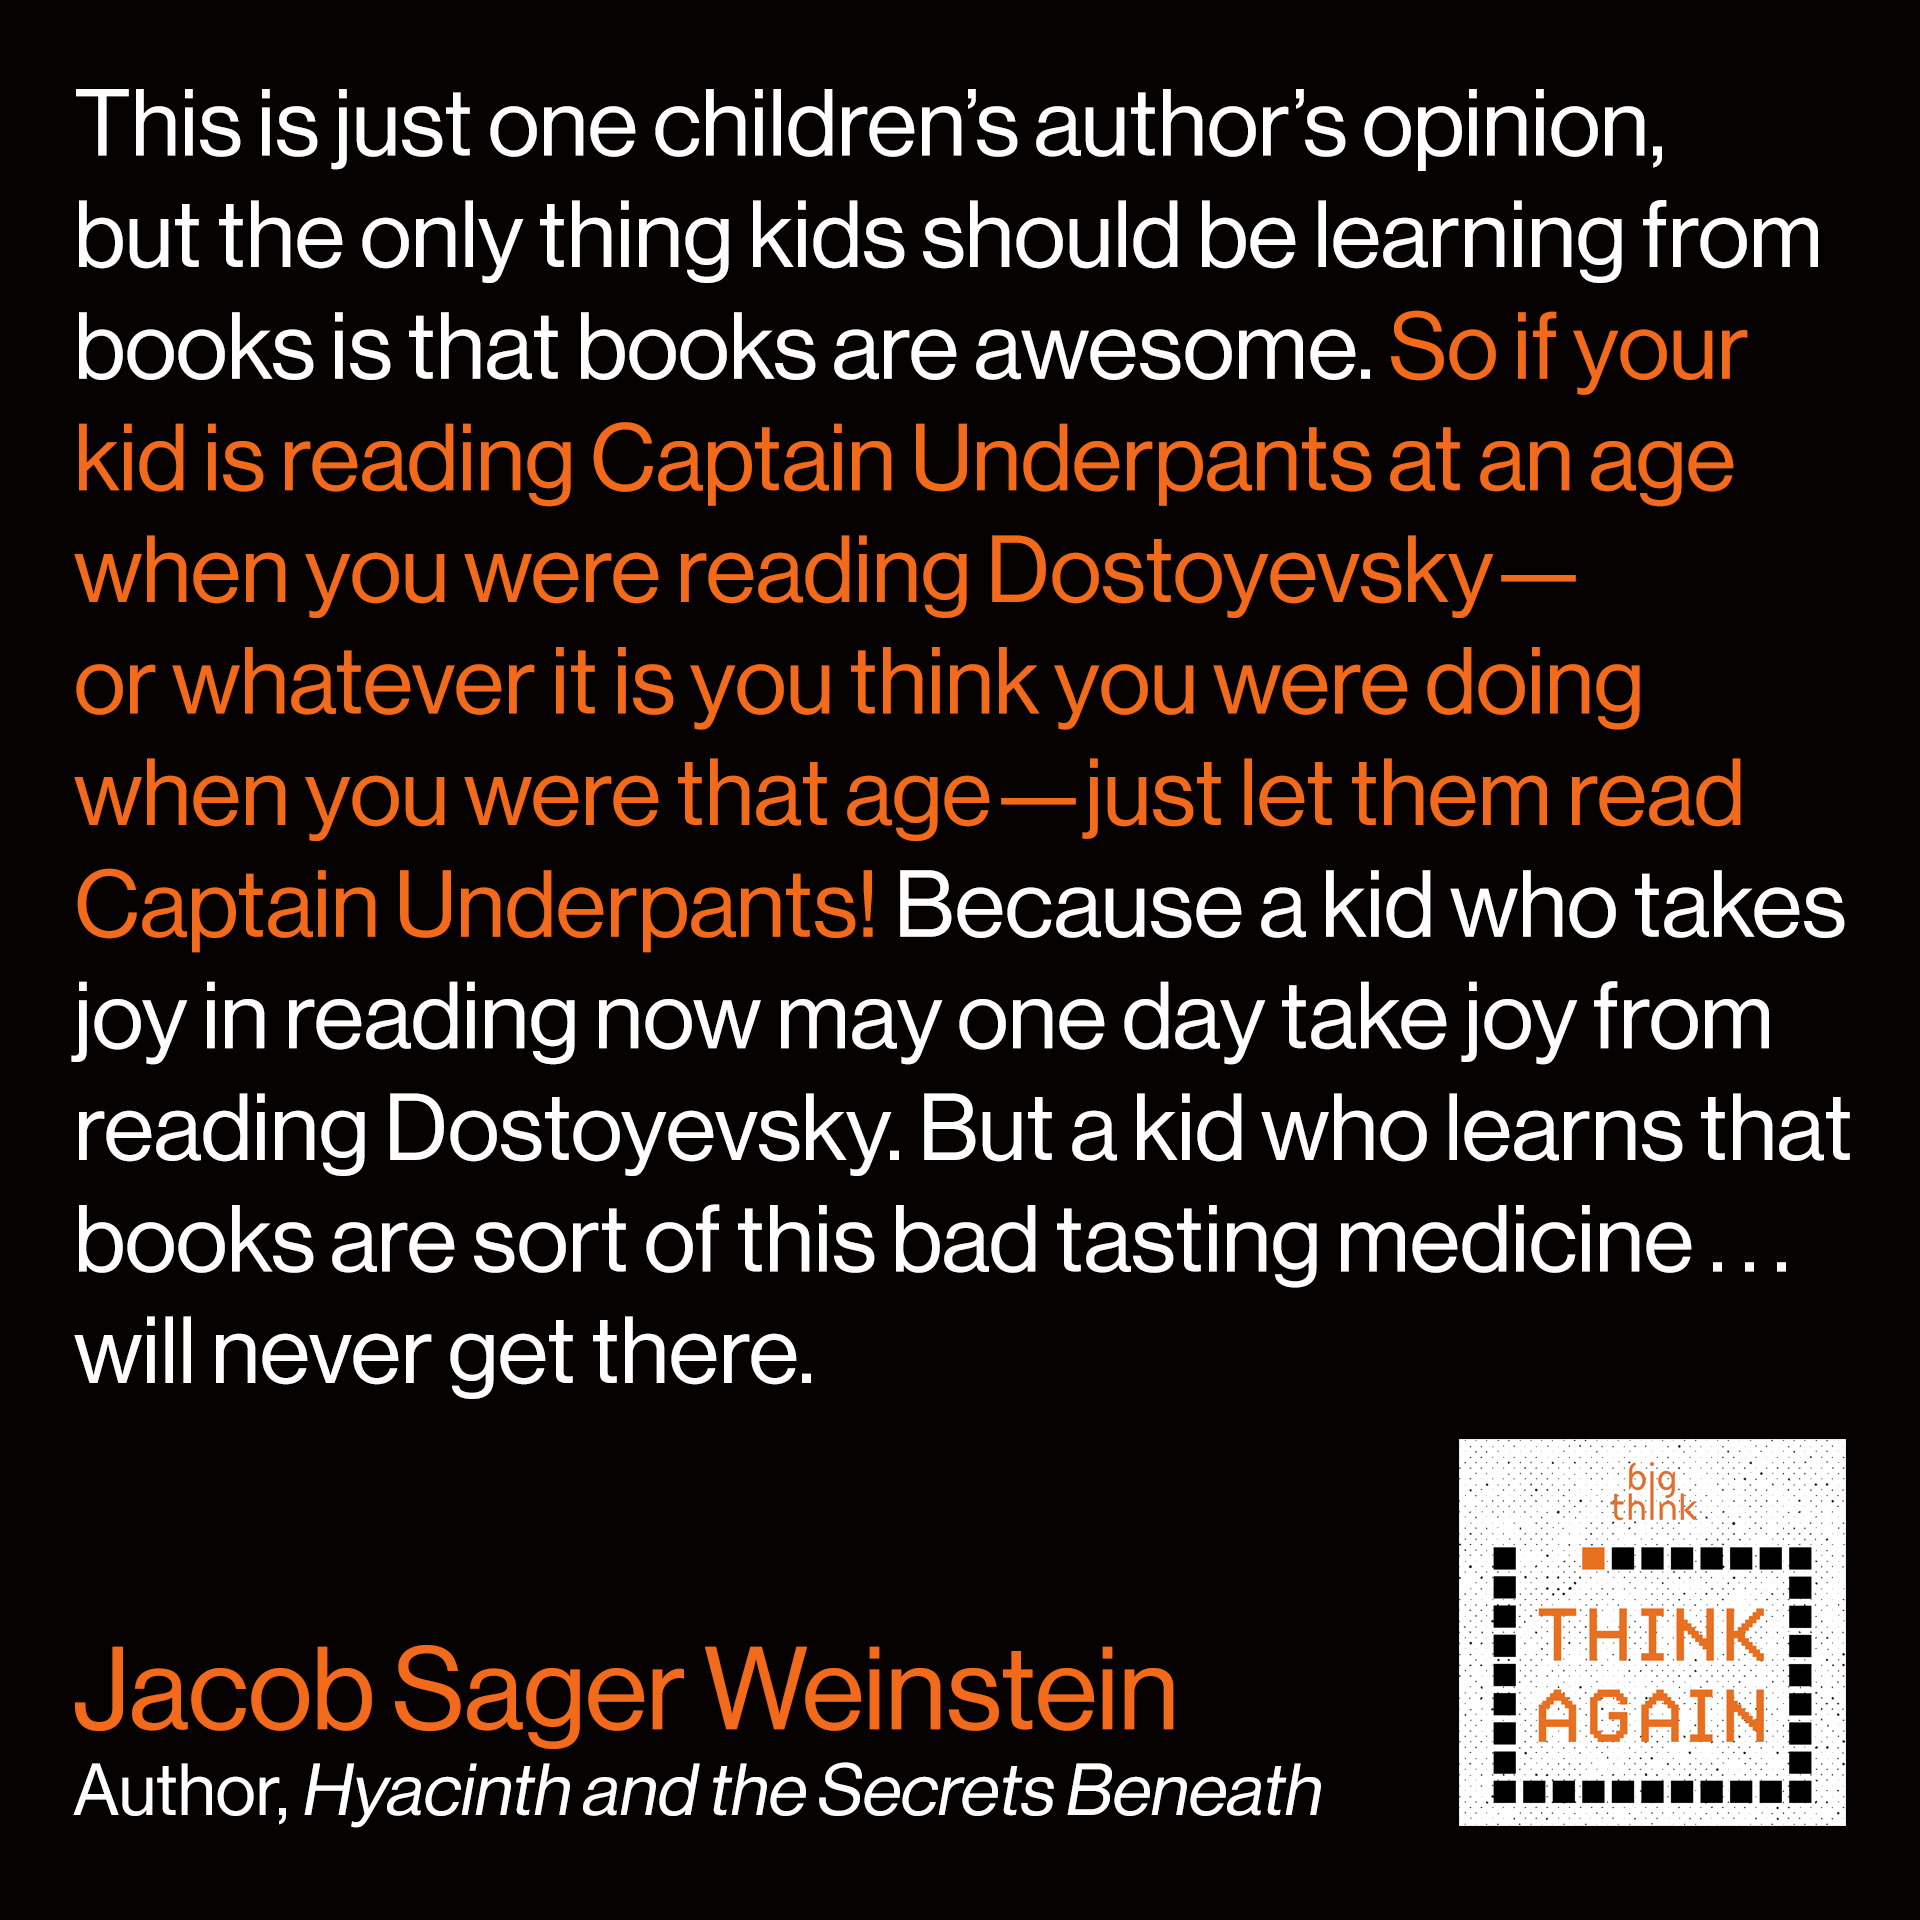 Jacob Sager Weinstein quote: This is just one children's author's opinion, but the only thing kids should be learning from books is that books are awesome. So if your kid is reading Captain Underpants at an age when you were reading Dostoyevsky—or whatever it is you think you were doing when you were that age—just let them read Captain Underpants! Because a kid who takes joy in reading now may one day take joy from reading Dostoyevsky. But a kid who learns that books are sort of this bad tasting medicine . . . will never get there.